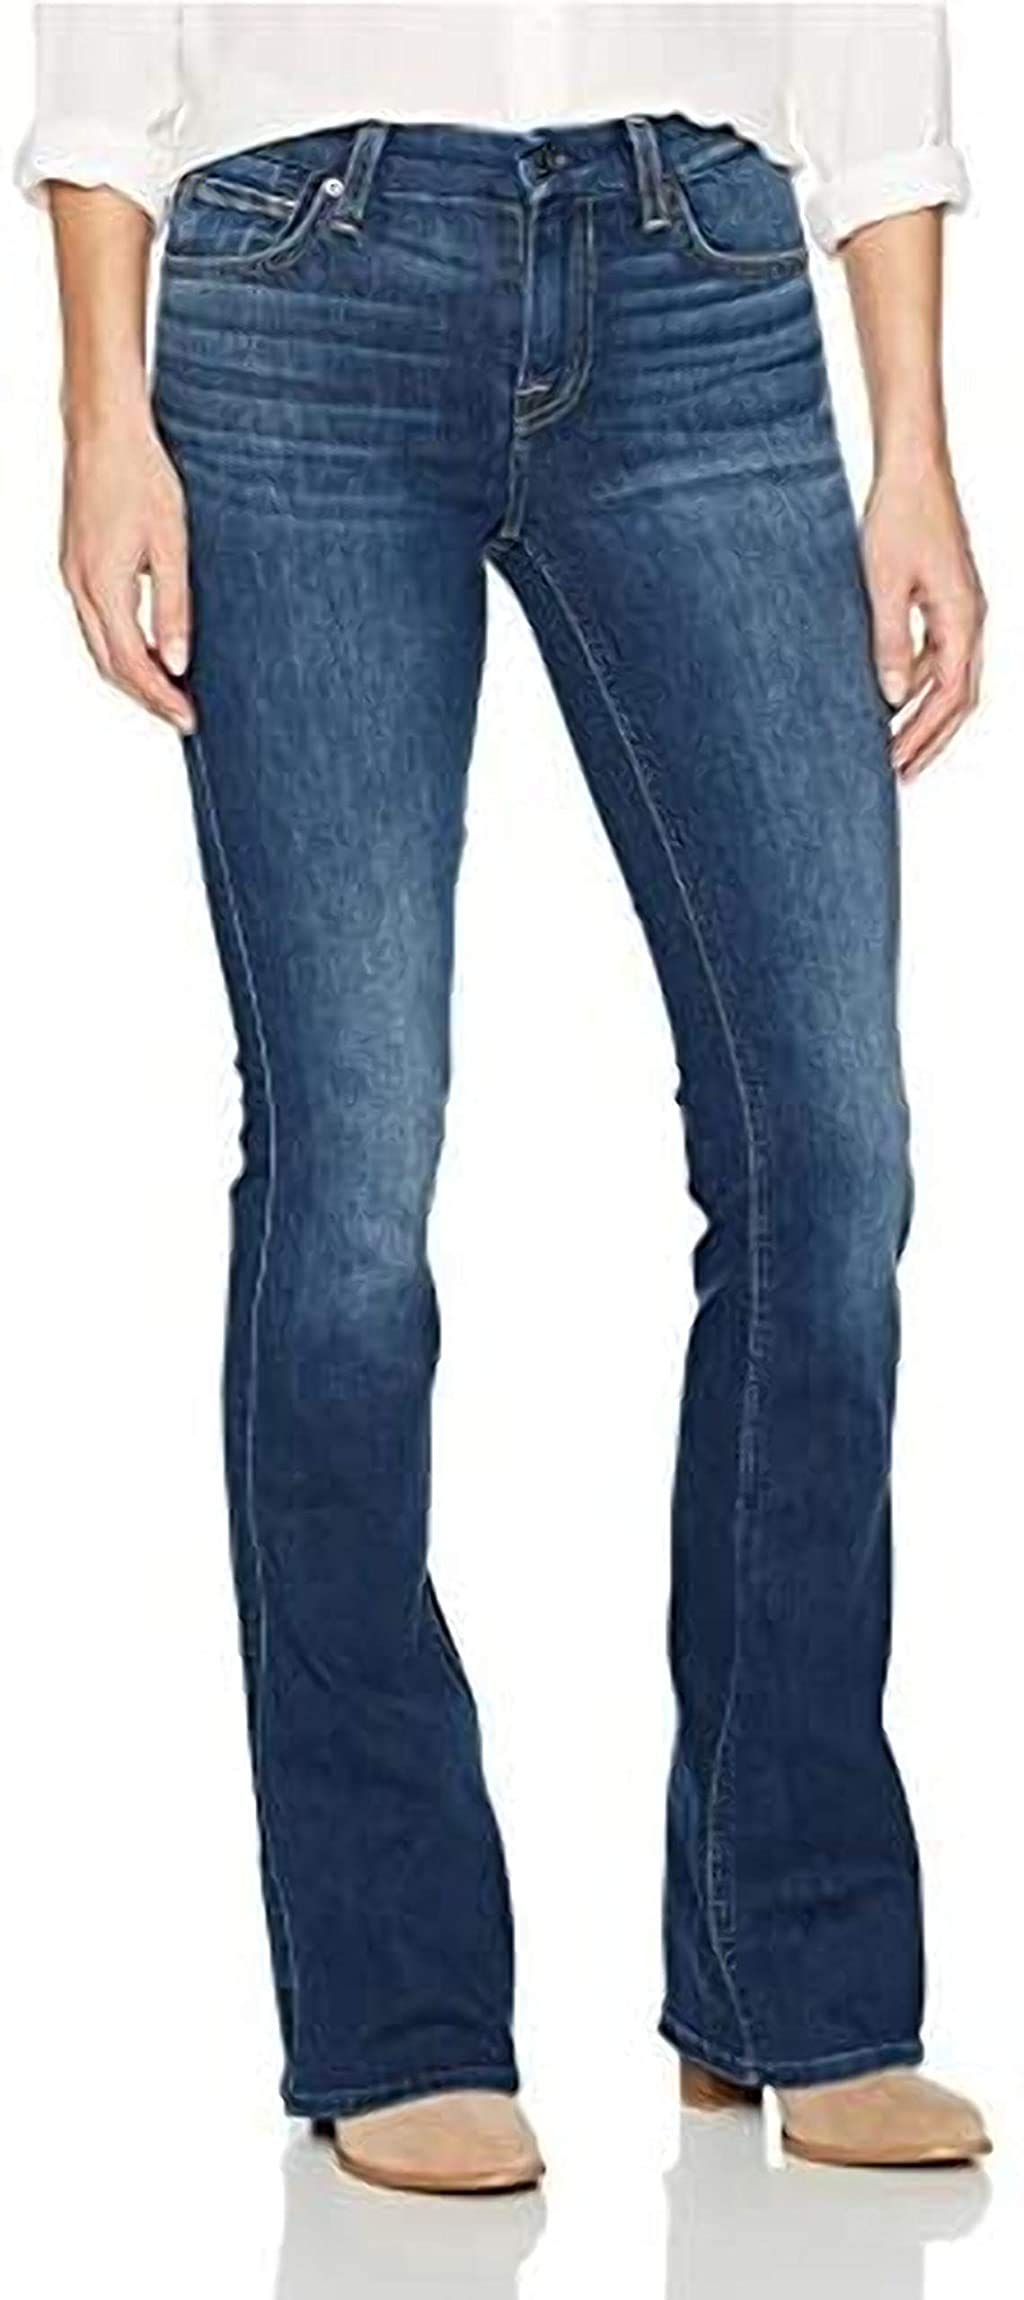 7 For All Mankind Women's Crop Flare Jean